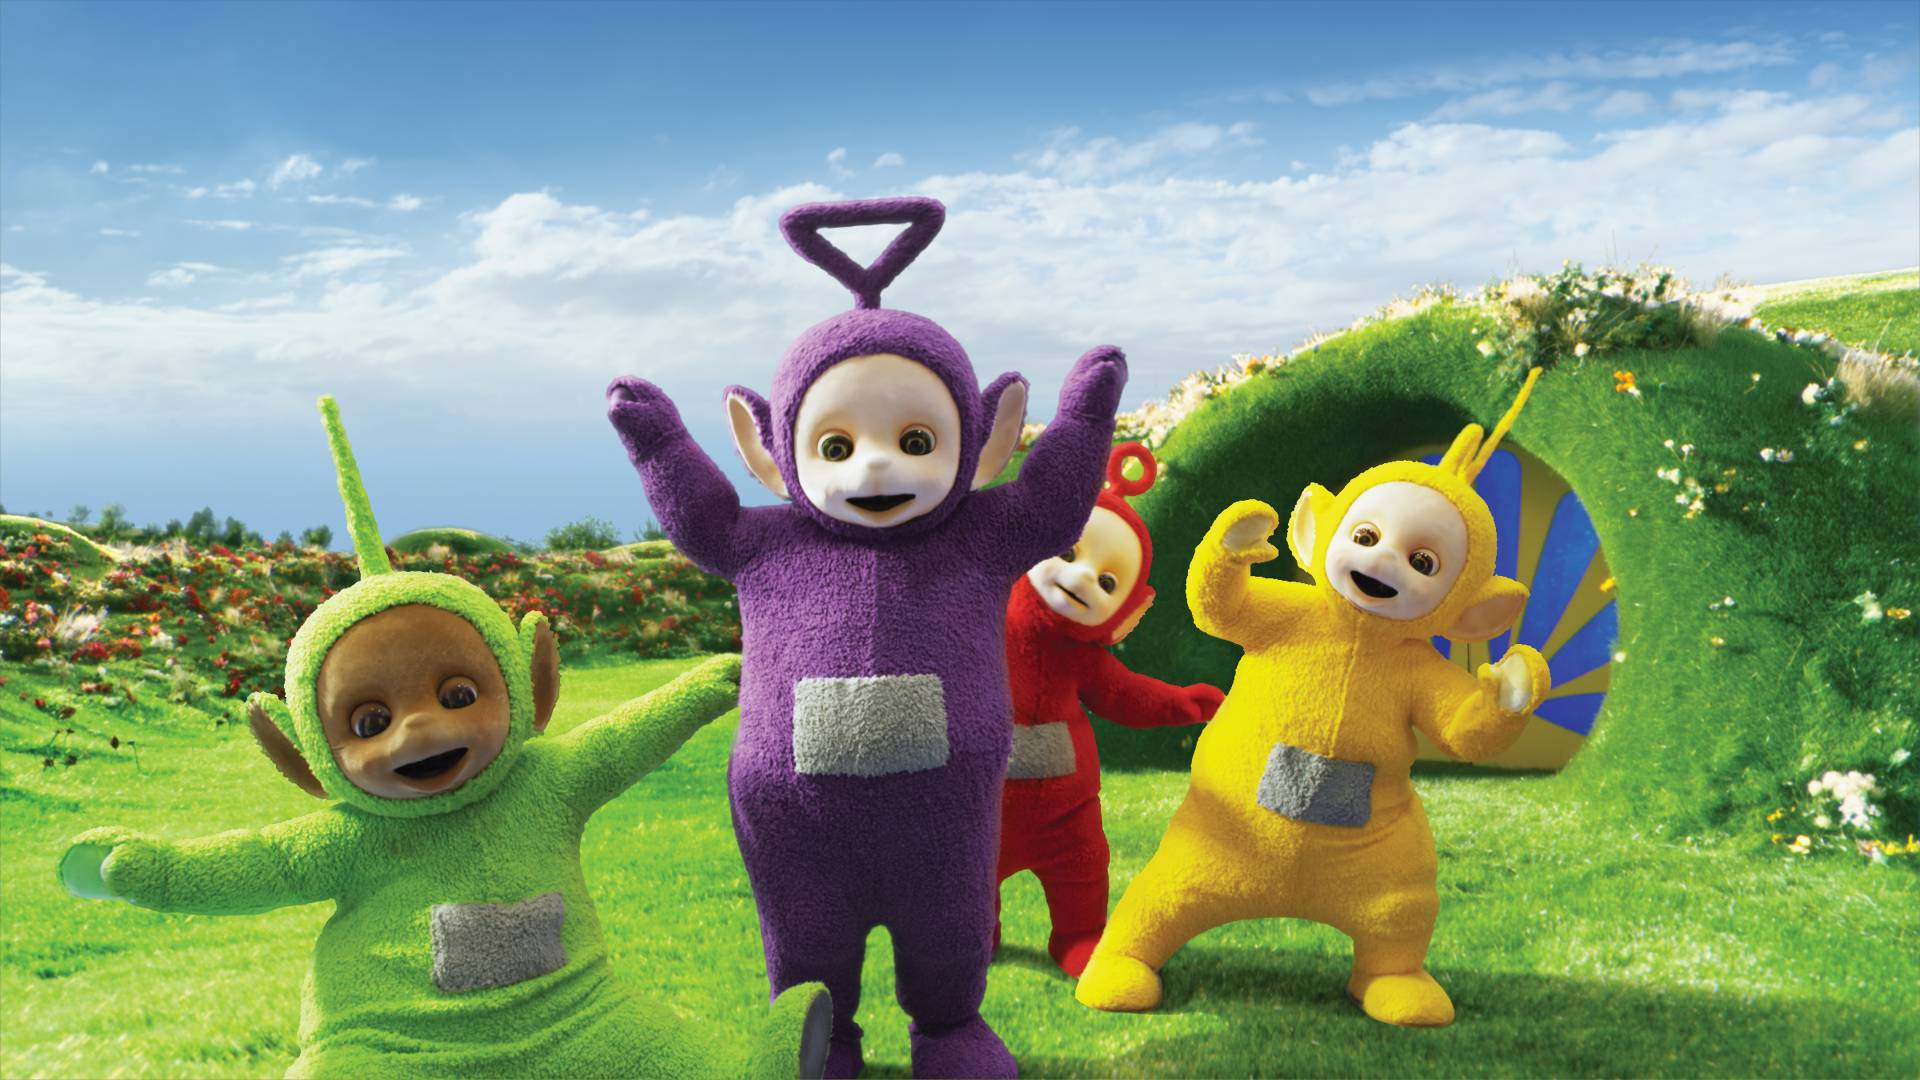 my son loves the Teletubbies, just like his oldest brother did too, I'm not sure what it is about those 4 crazy characters but it sure does lure the kids in!